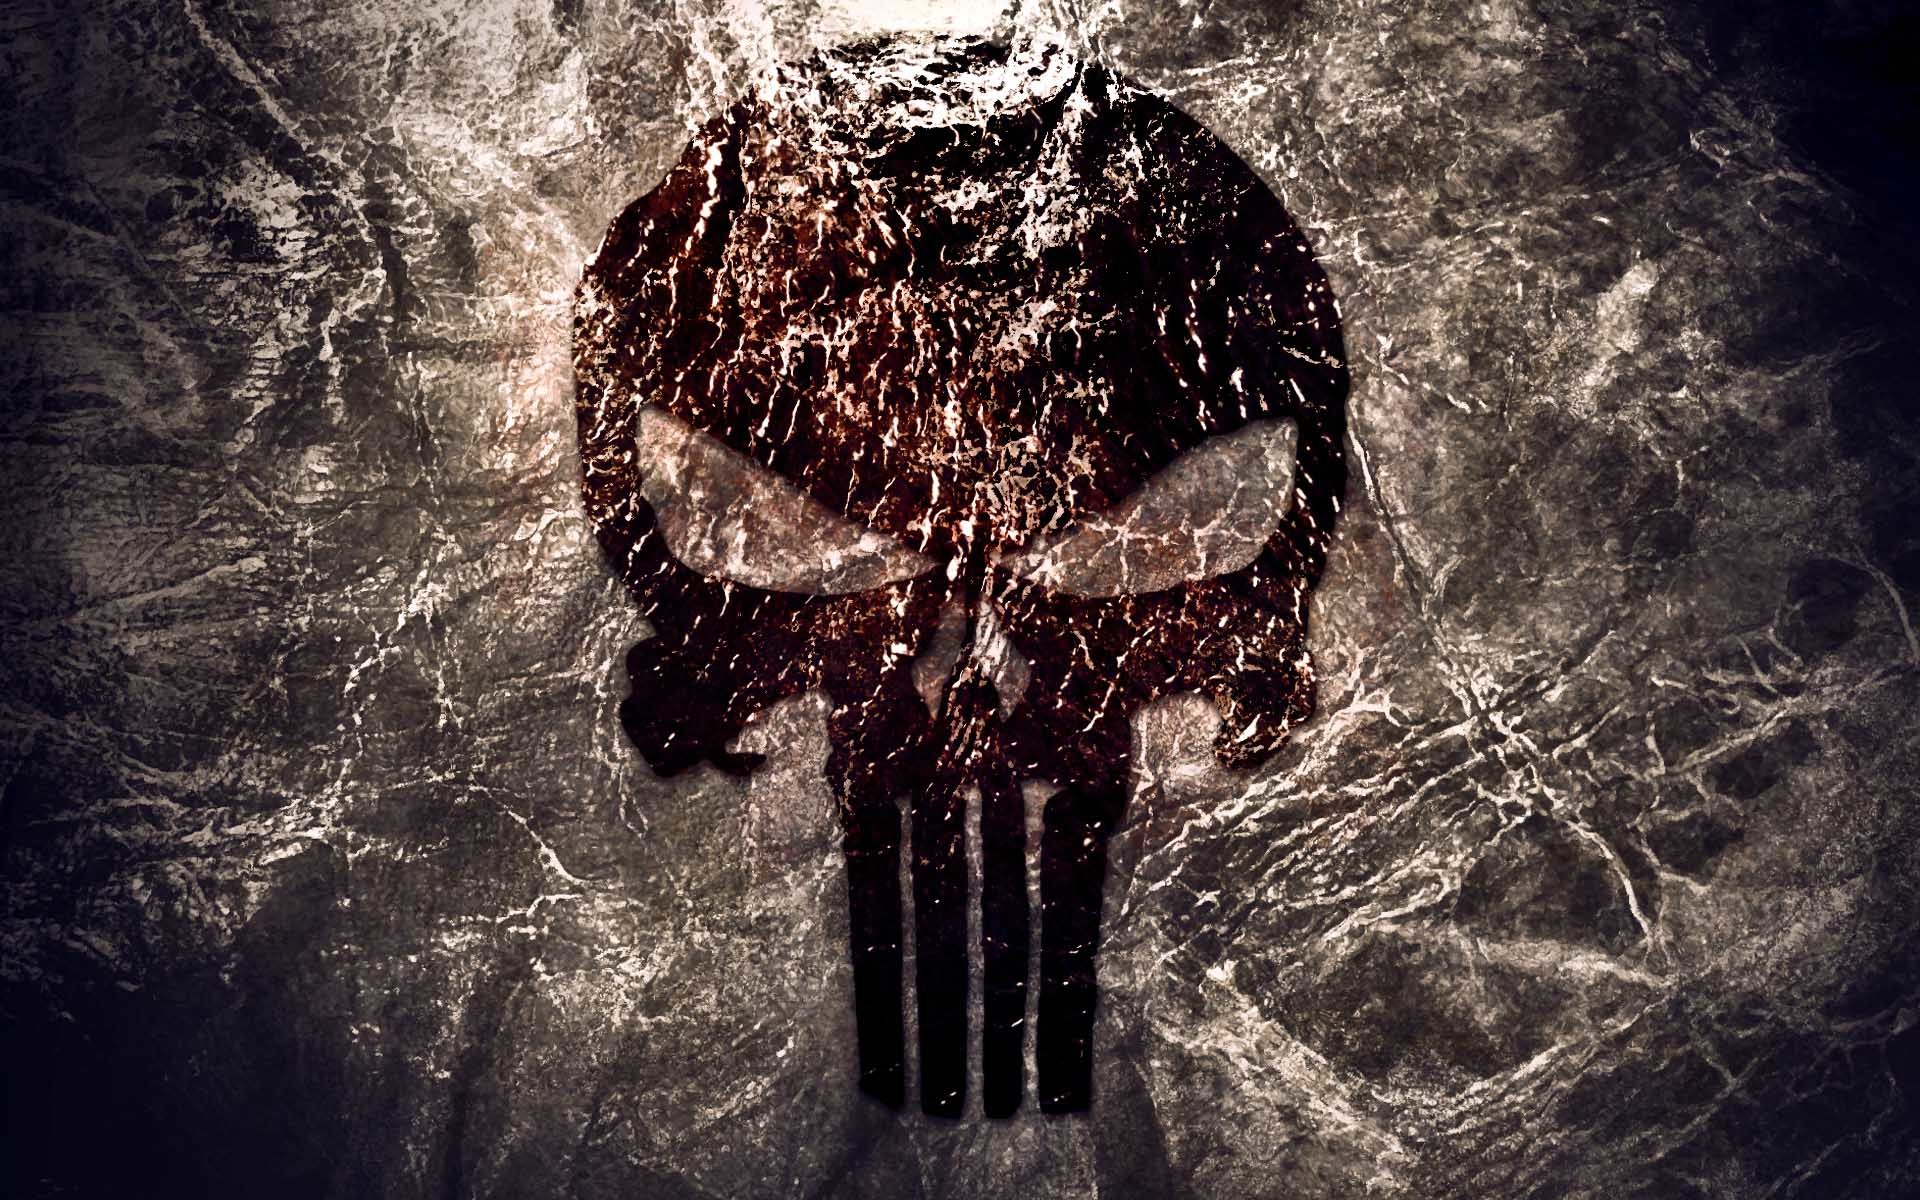 The Punisher Texture Logo Wallpaper Download Wallpaper from .